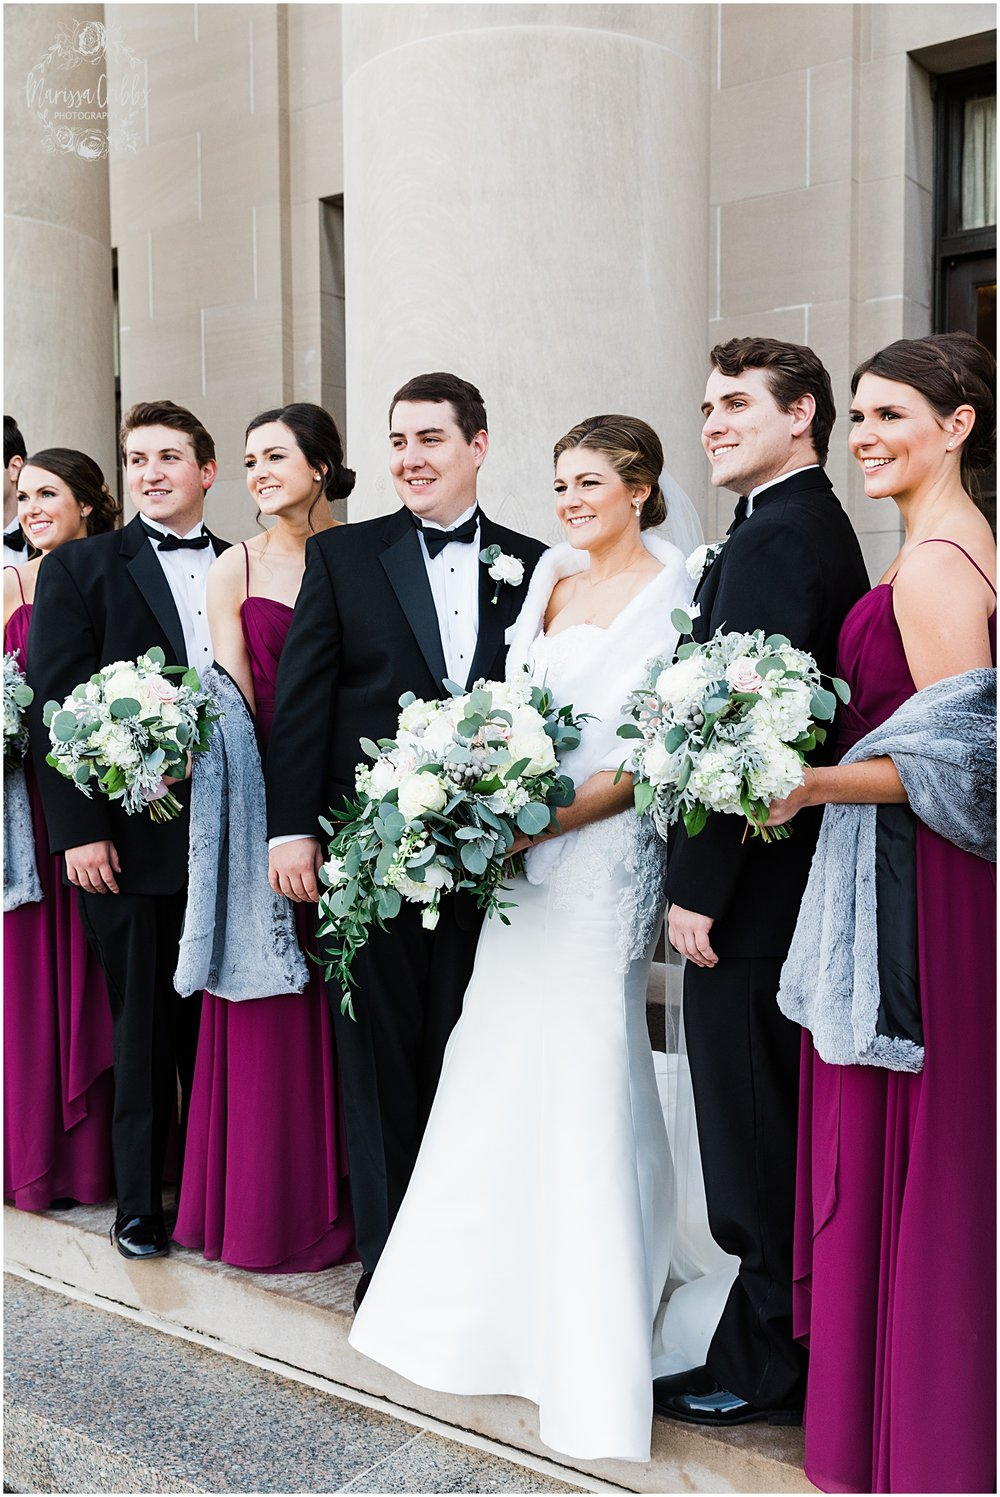 JOE & CAROLINE MARRIED | INDIAN HILLS COUNTRY CLUB | MARISSA CRIBBS PHOTOGRAPHY_7209.jpg